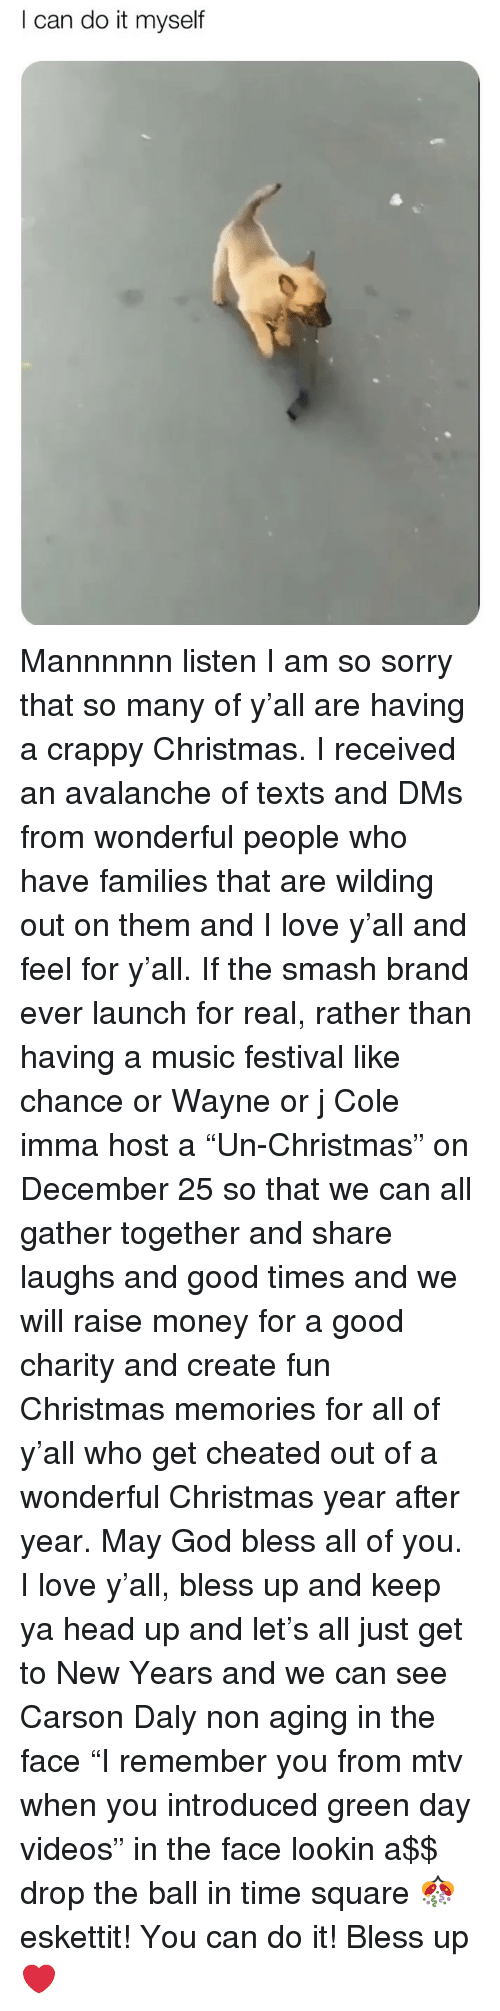 """Green Day: I can do it myself Mannnnnn listen I am so sorry that so many of y'all are having a crappy Christmas. I received an avalanche of texts and DMs from wonderful people who have families that are wilding out on them and I love y'all and feel for y'all. If the smash brand ever launch for real, rather than having a music festival like chance or Wayne or j Cole imma host a """"Un-Christmas"""" on December 25 so that we can all gather together and share laughs and good times and we will raise money for a good charity and create fun Christmas memories for all of y'all who get cheated out of a wonderful Christmas year after year. May God bless all of you. I love y'all, bless up and keep ya head up and let's all just get to New Years and we can see Carson Daly non aging in the face """"I remember you from mtv when you introduced green day videos"""" in the face lookin a$$ drop the ball in time square 🎊 eskettit! You can do it! Bless up ❤️"""